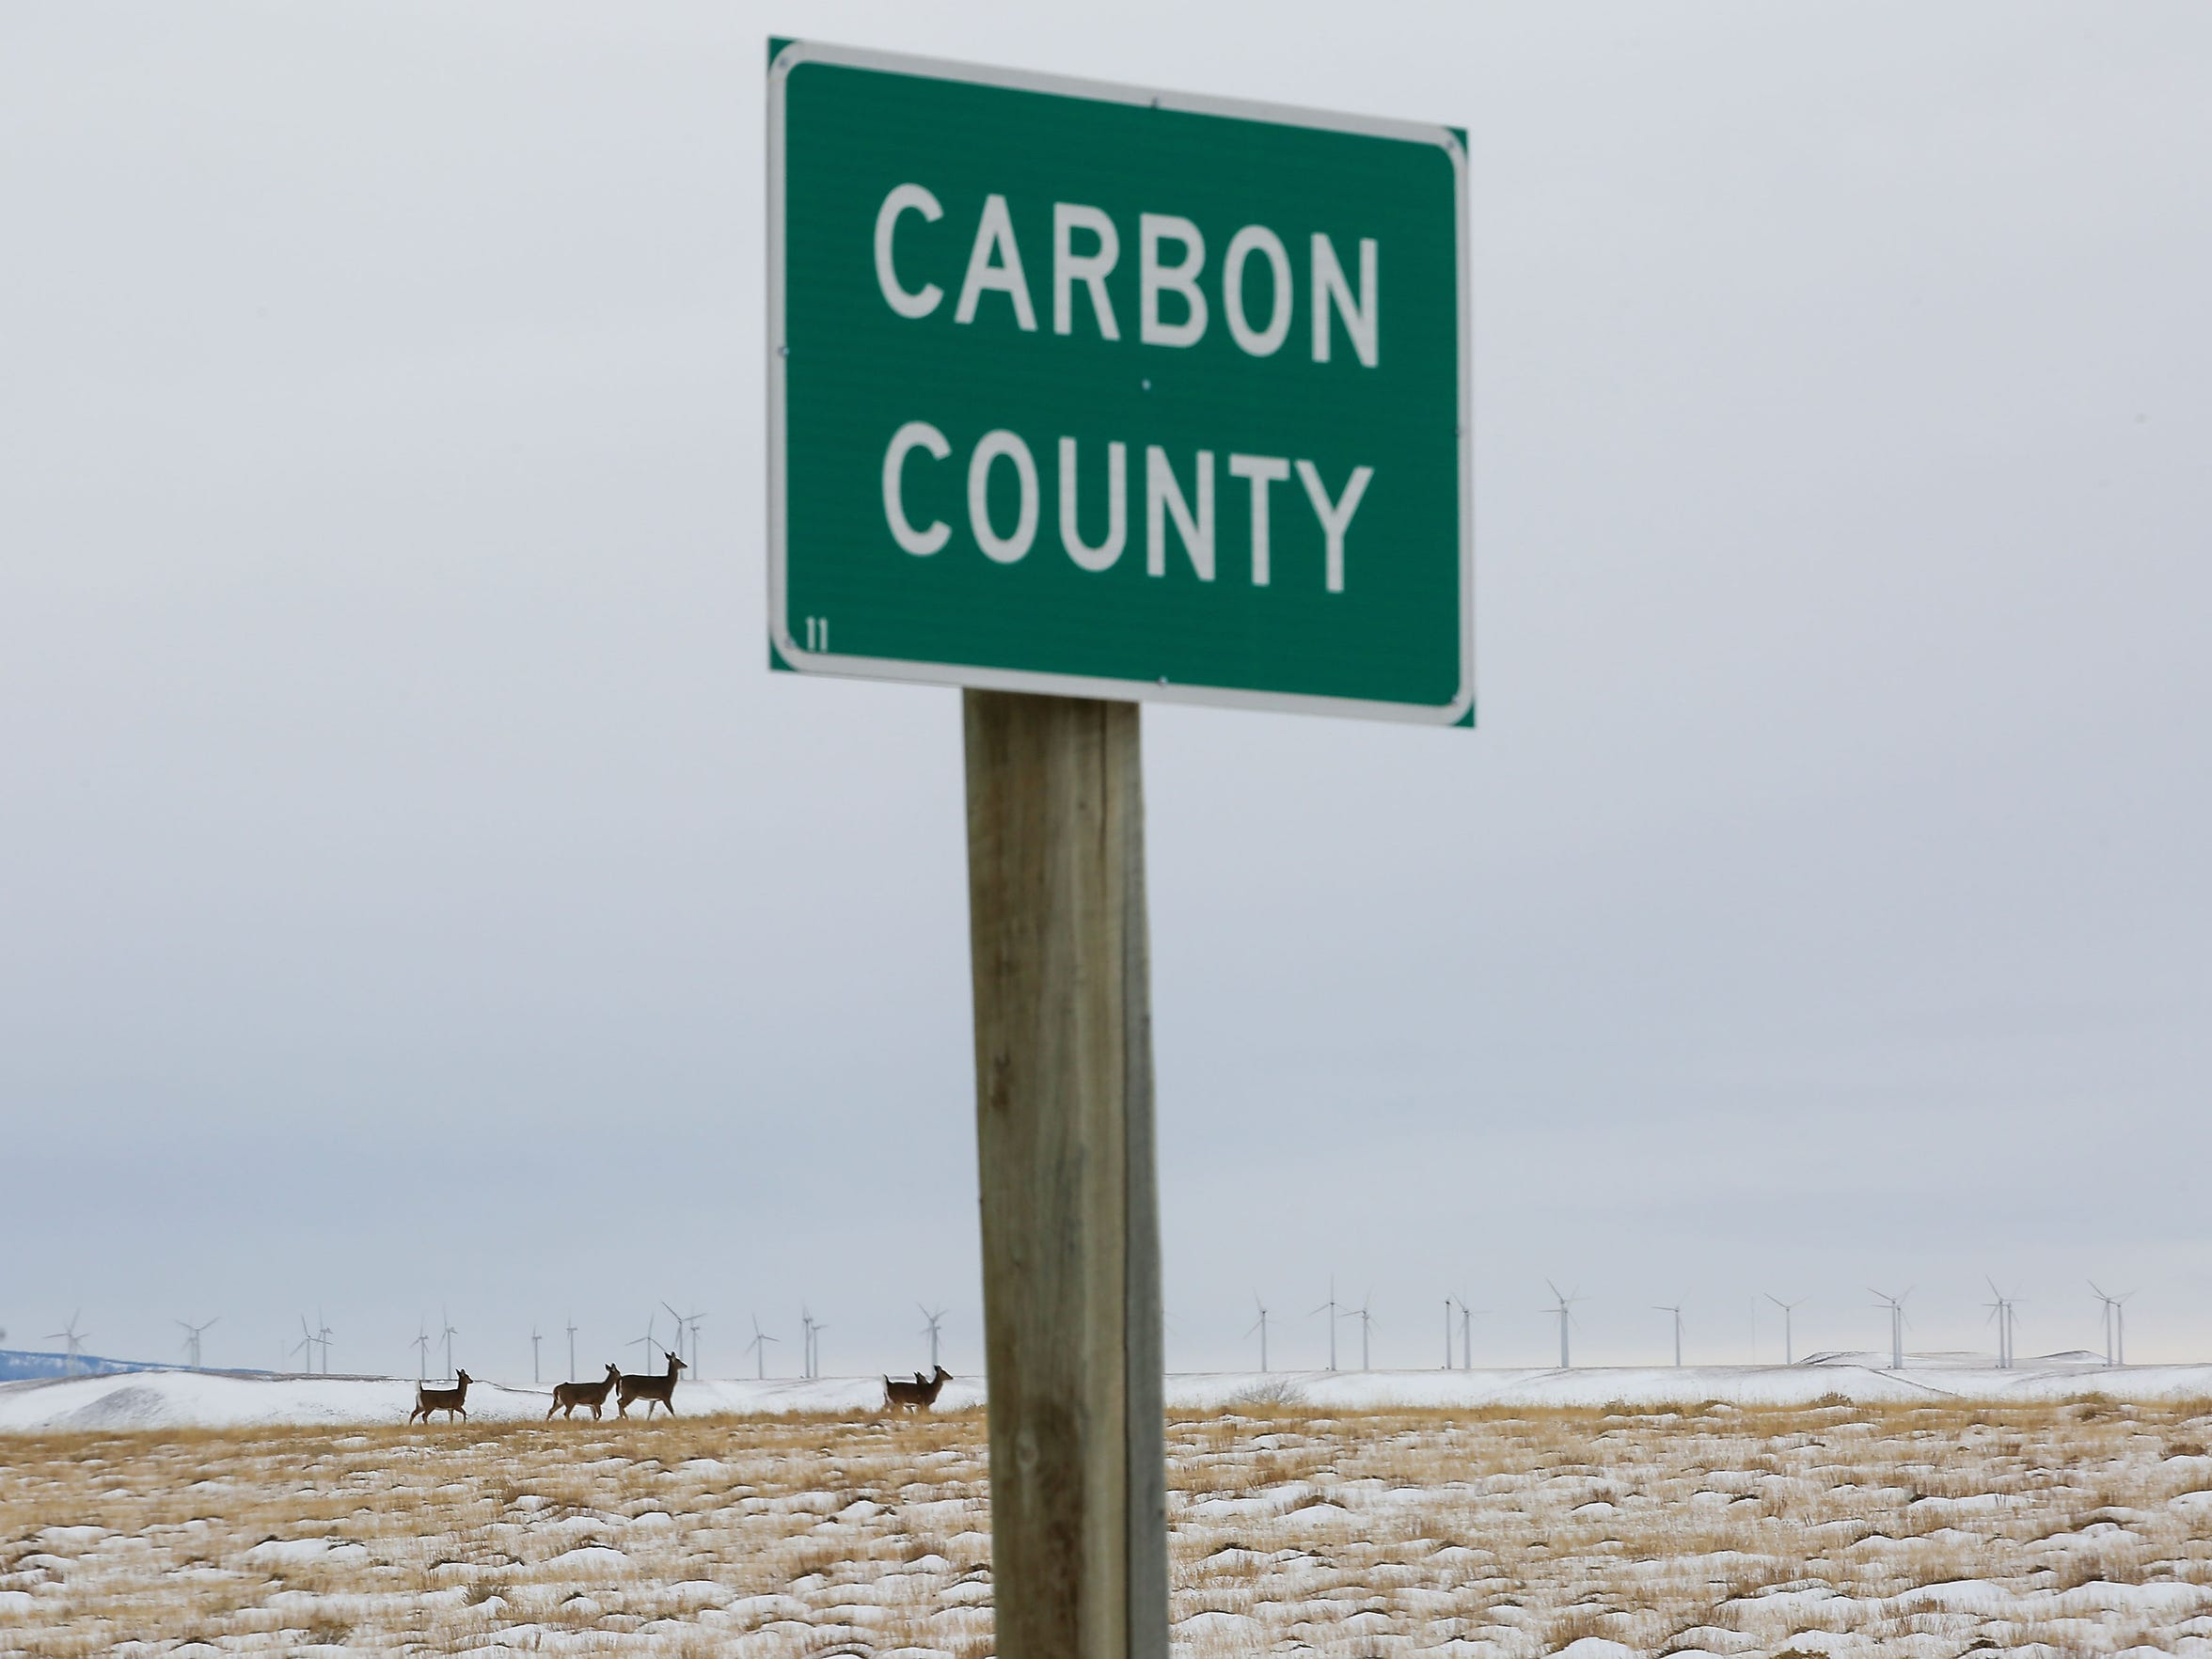 Deer run through the open landscape in Carbon County,